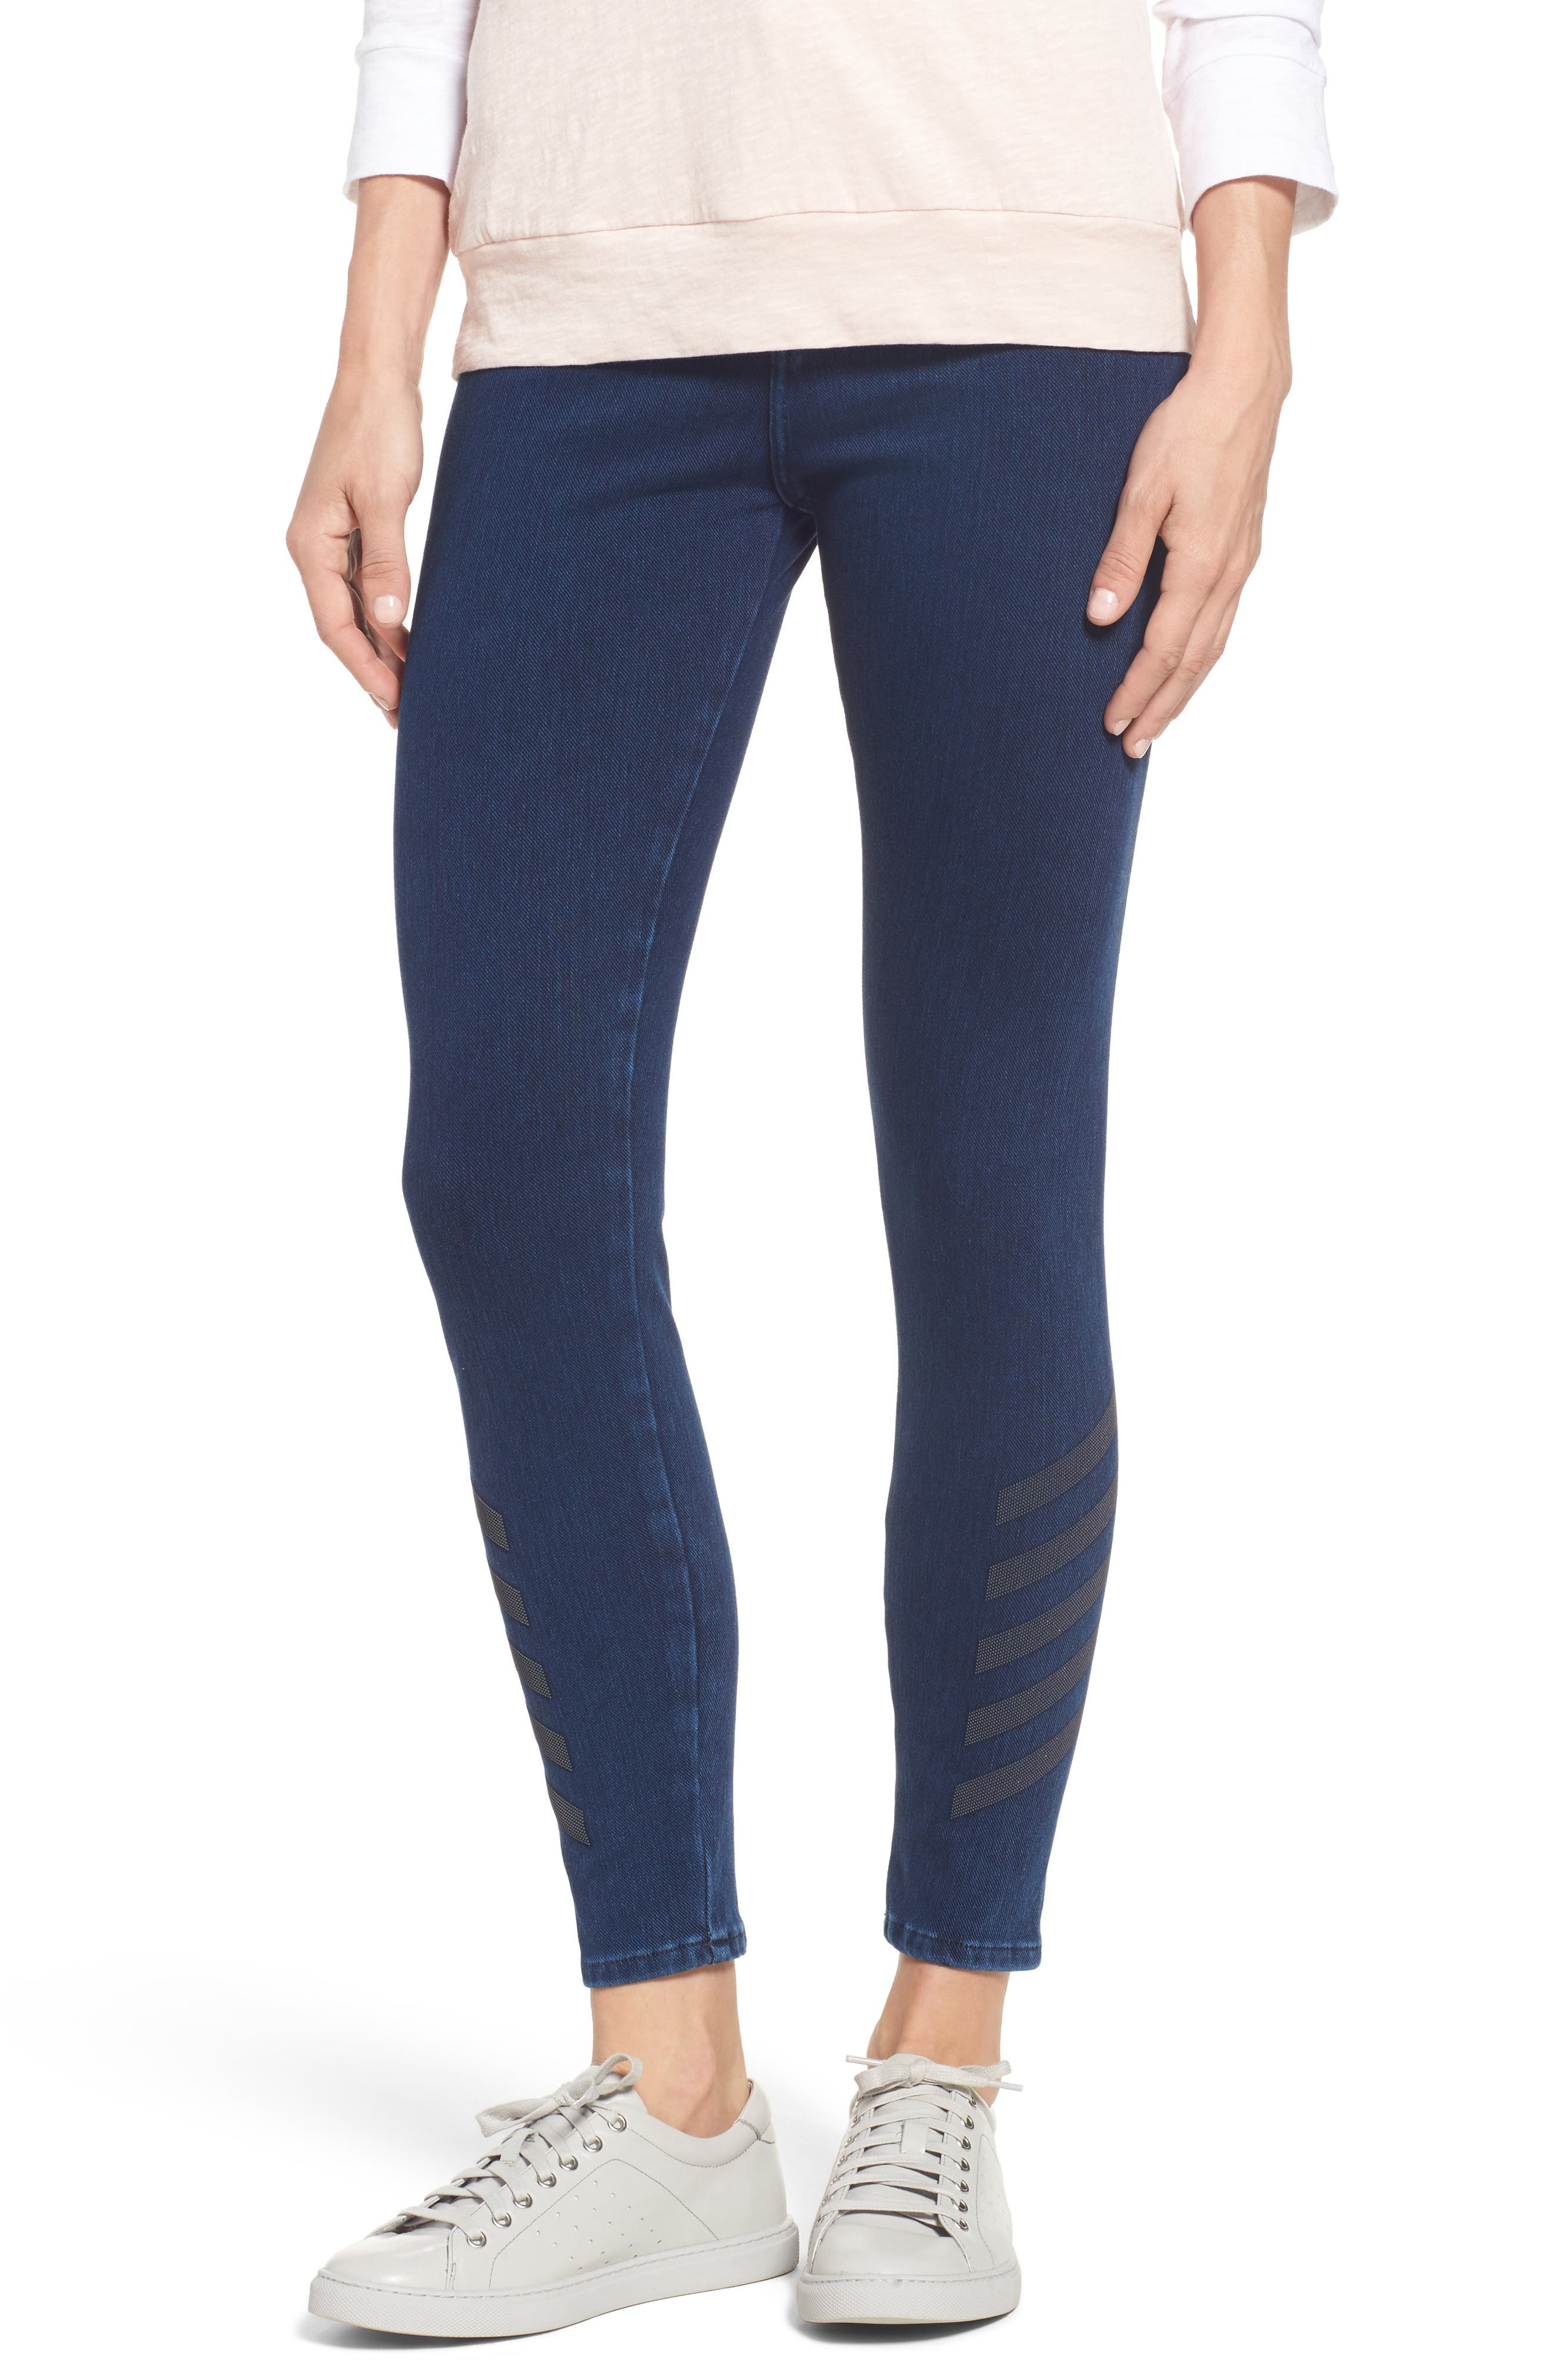 Joie Embellished High Waist Skinny Jeans,                             Main thumbnail 1, color,                             401